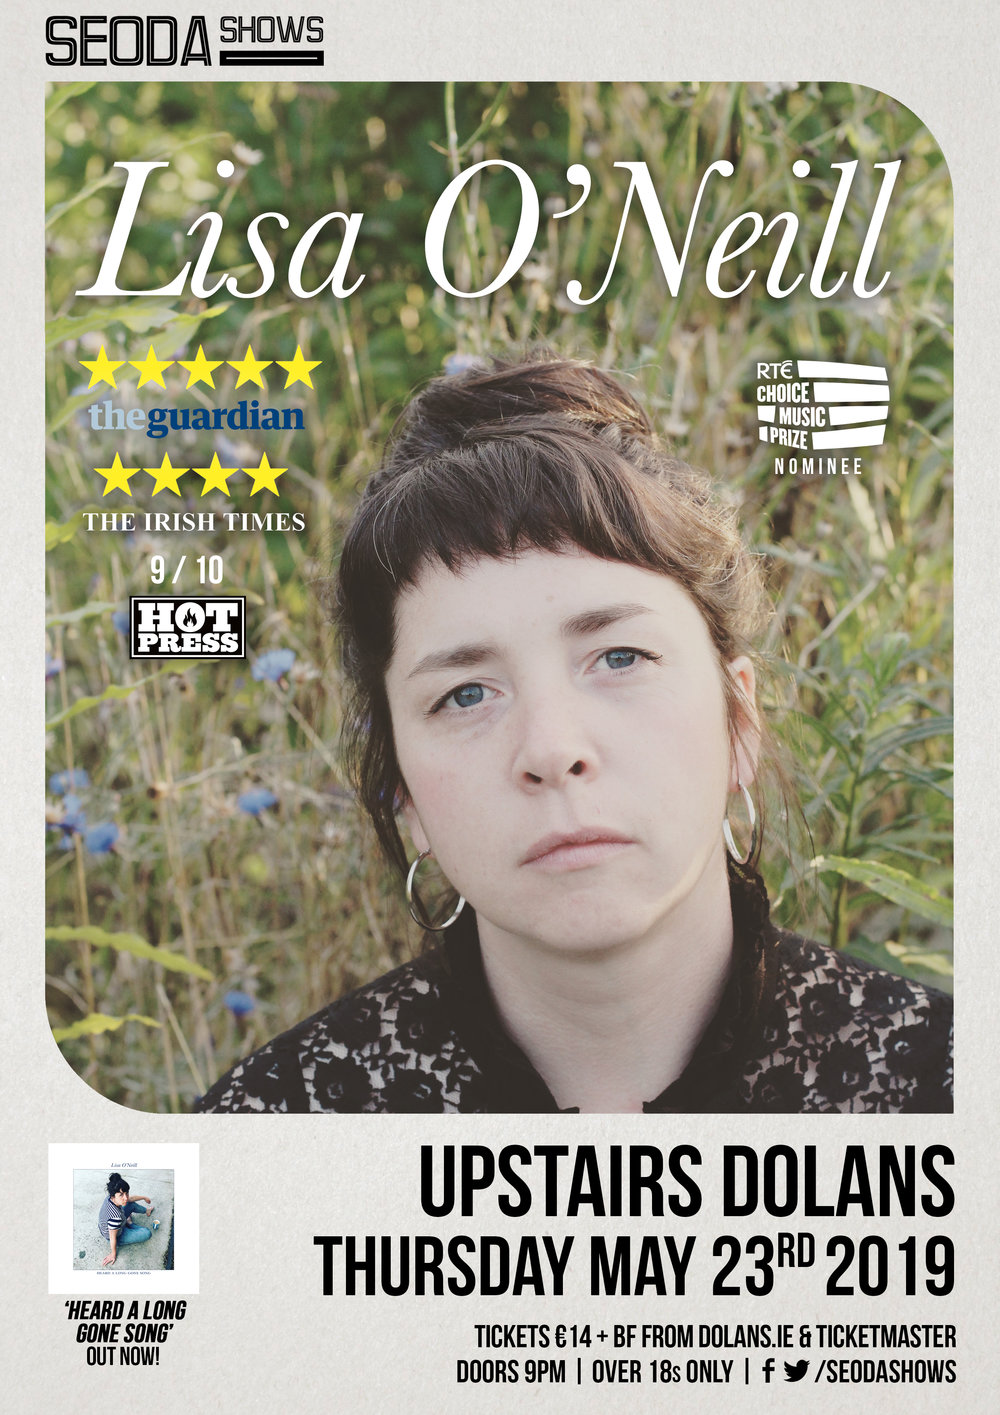 Lisa O'Neill Seoda Shows Limerick May 23rd Dolans